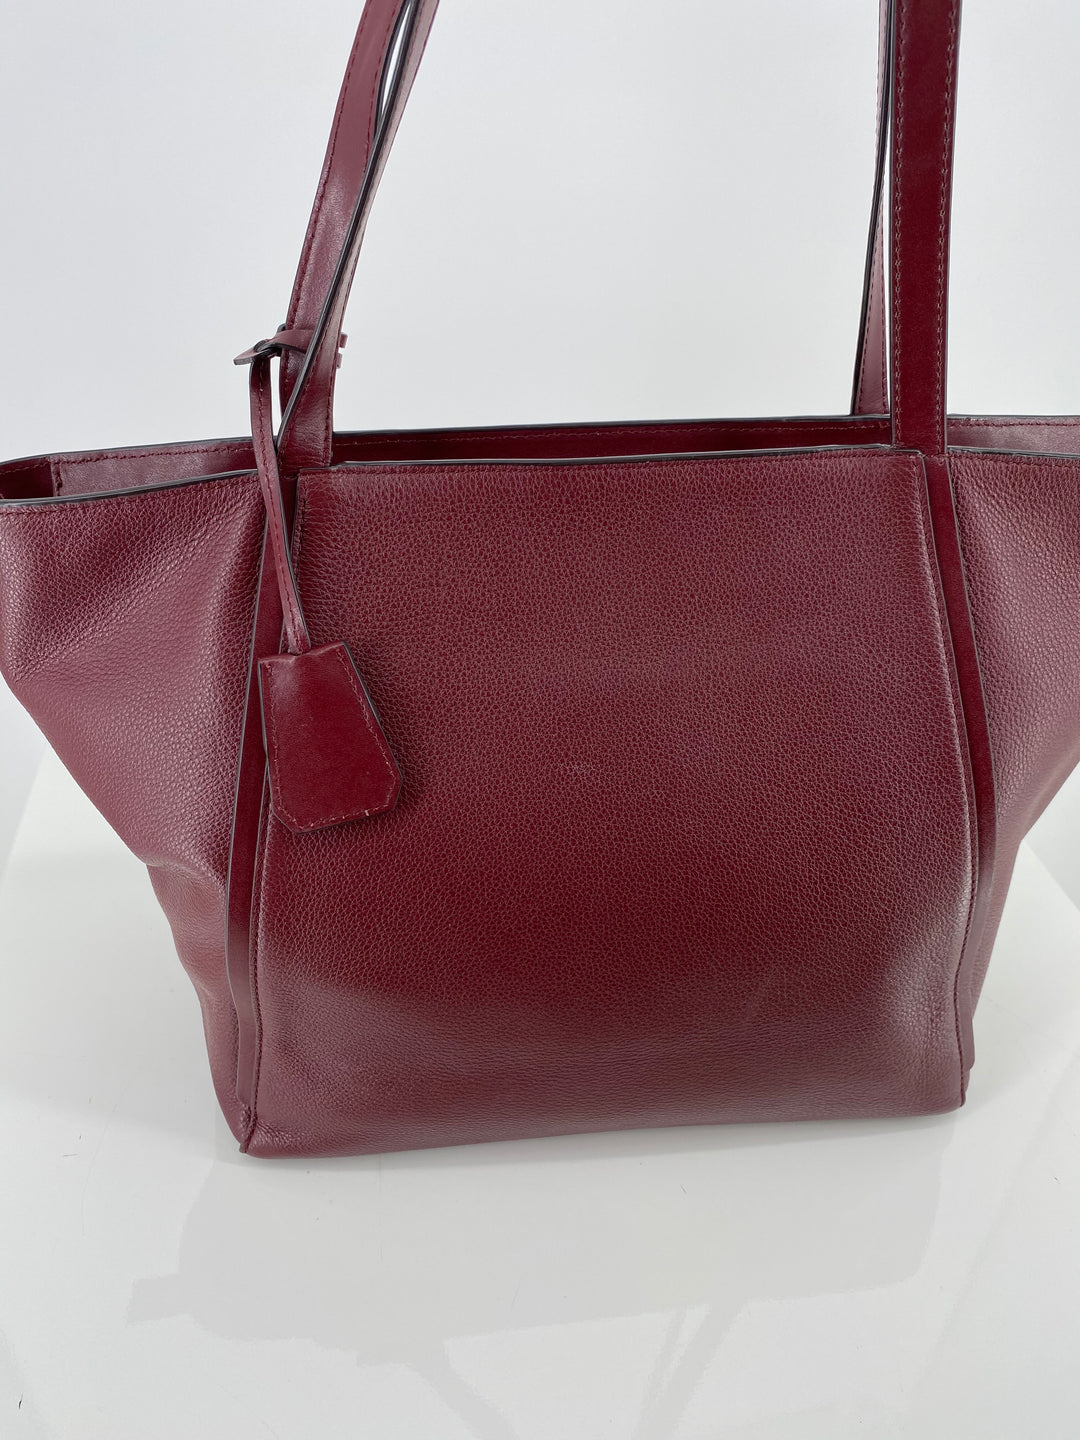 Photo #2 - BRAND: MICHAEL KORS , STYLE: HANDBAG DESIGNER , COLOR: BURGUNDY , SIZE: LARGE , OTHER INFO: AS IS DUE TO COSMETIC WEAR. AS SEEN IN PICTURES, SKU: 105-3752-29907